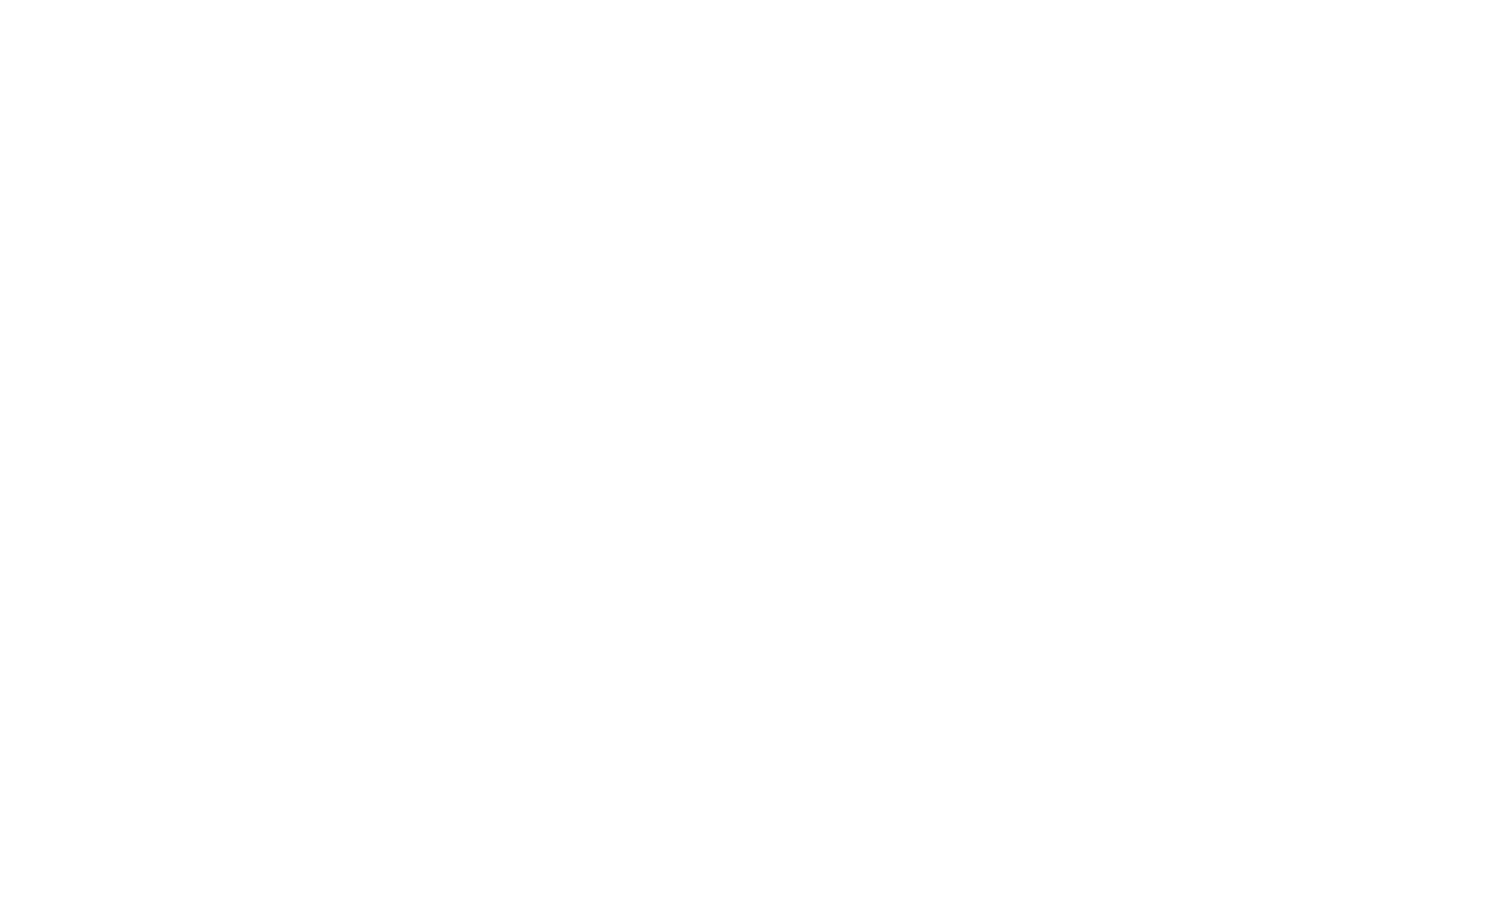 Pastor Ruddy Gracia